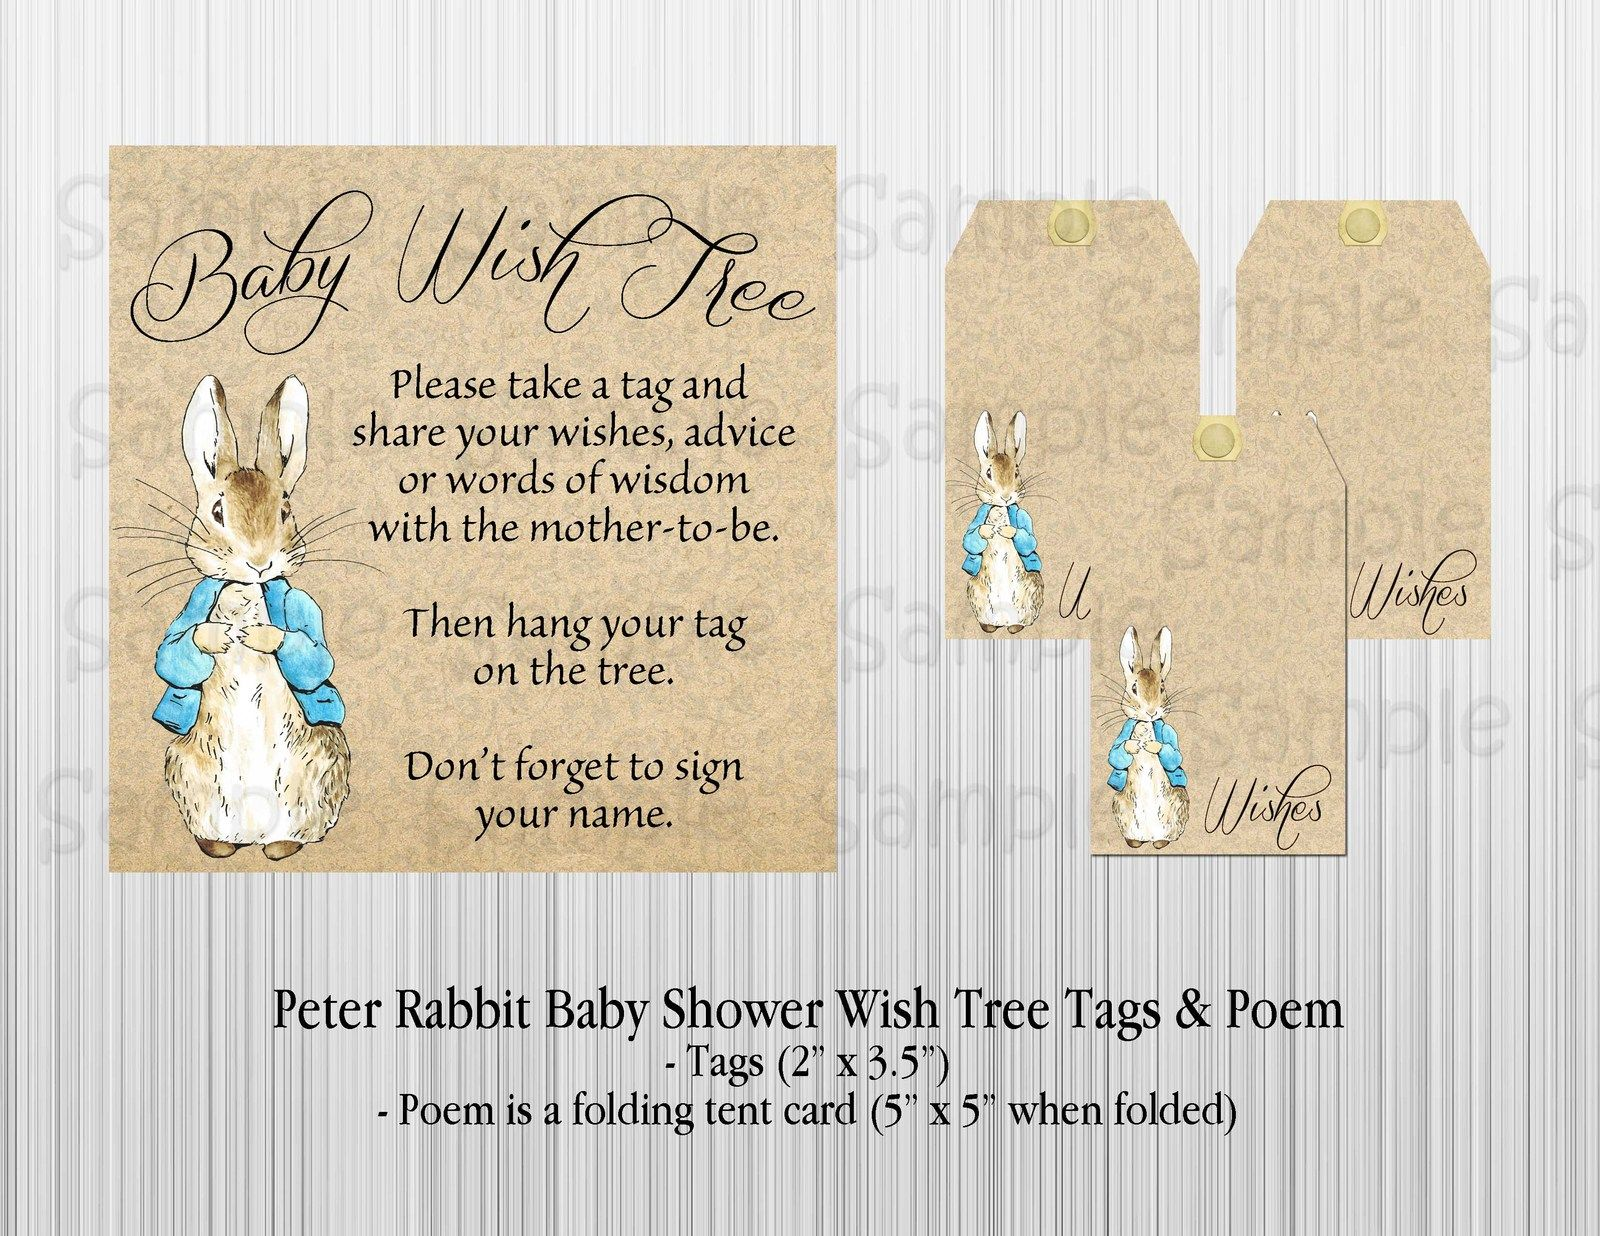 Peter Rabbit Baby Shower Wish Tree Tags And Poem With Satin Ribbon Attached Guest Books Pens Baby Shower Wishes Rabbit Baby Shower Tree Tags